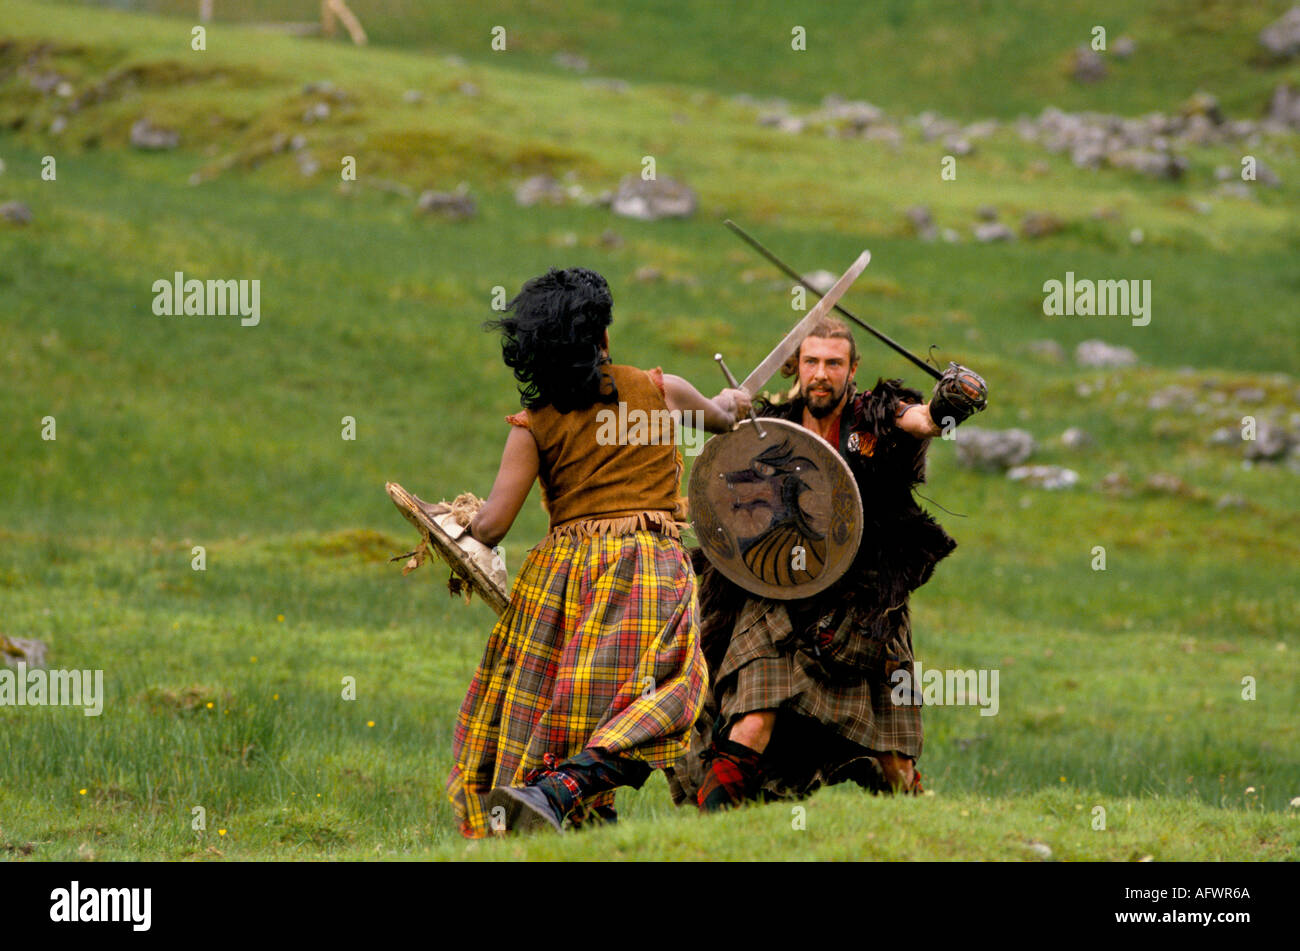 THE CLAN GROUP RE ENACTMENT OF ANCIENT SCOTTISH BATTLES  REENACTMENT BATTLE OF  CULLODEN HOMER SYKES - Stock Image